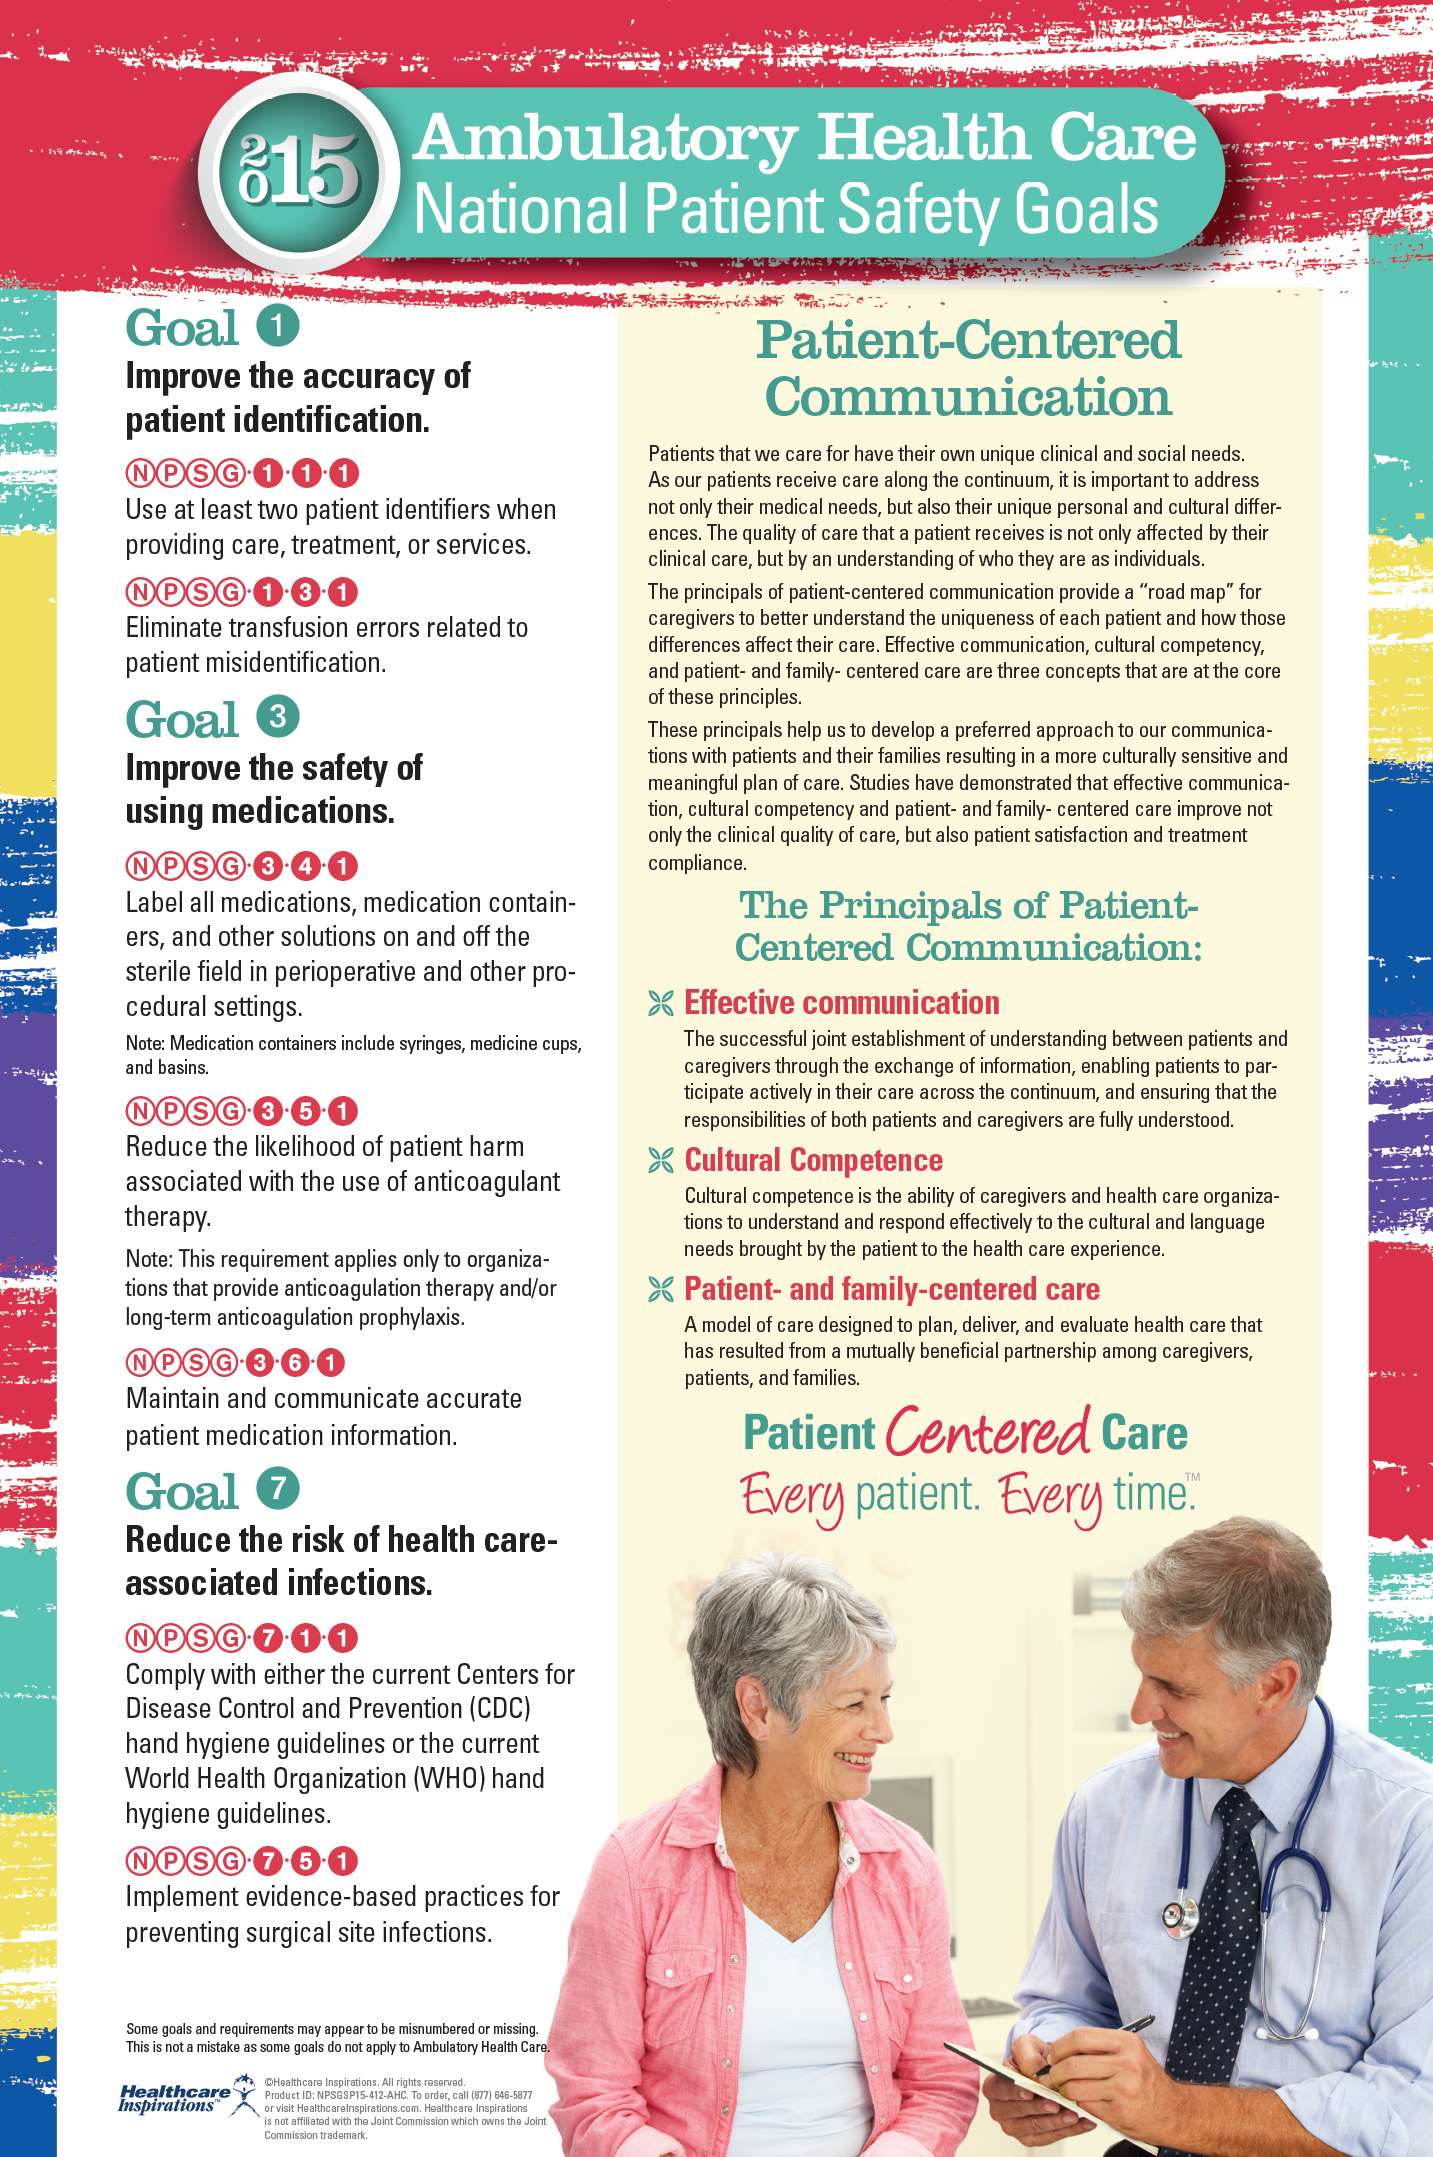 National Patient Safety Goals 2016 Printable | just b.CAUSE